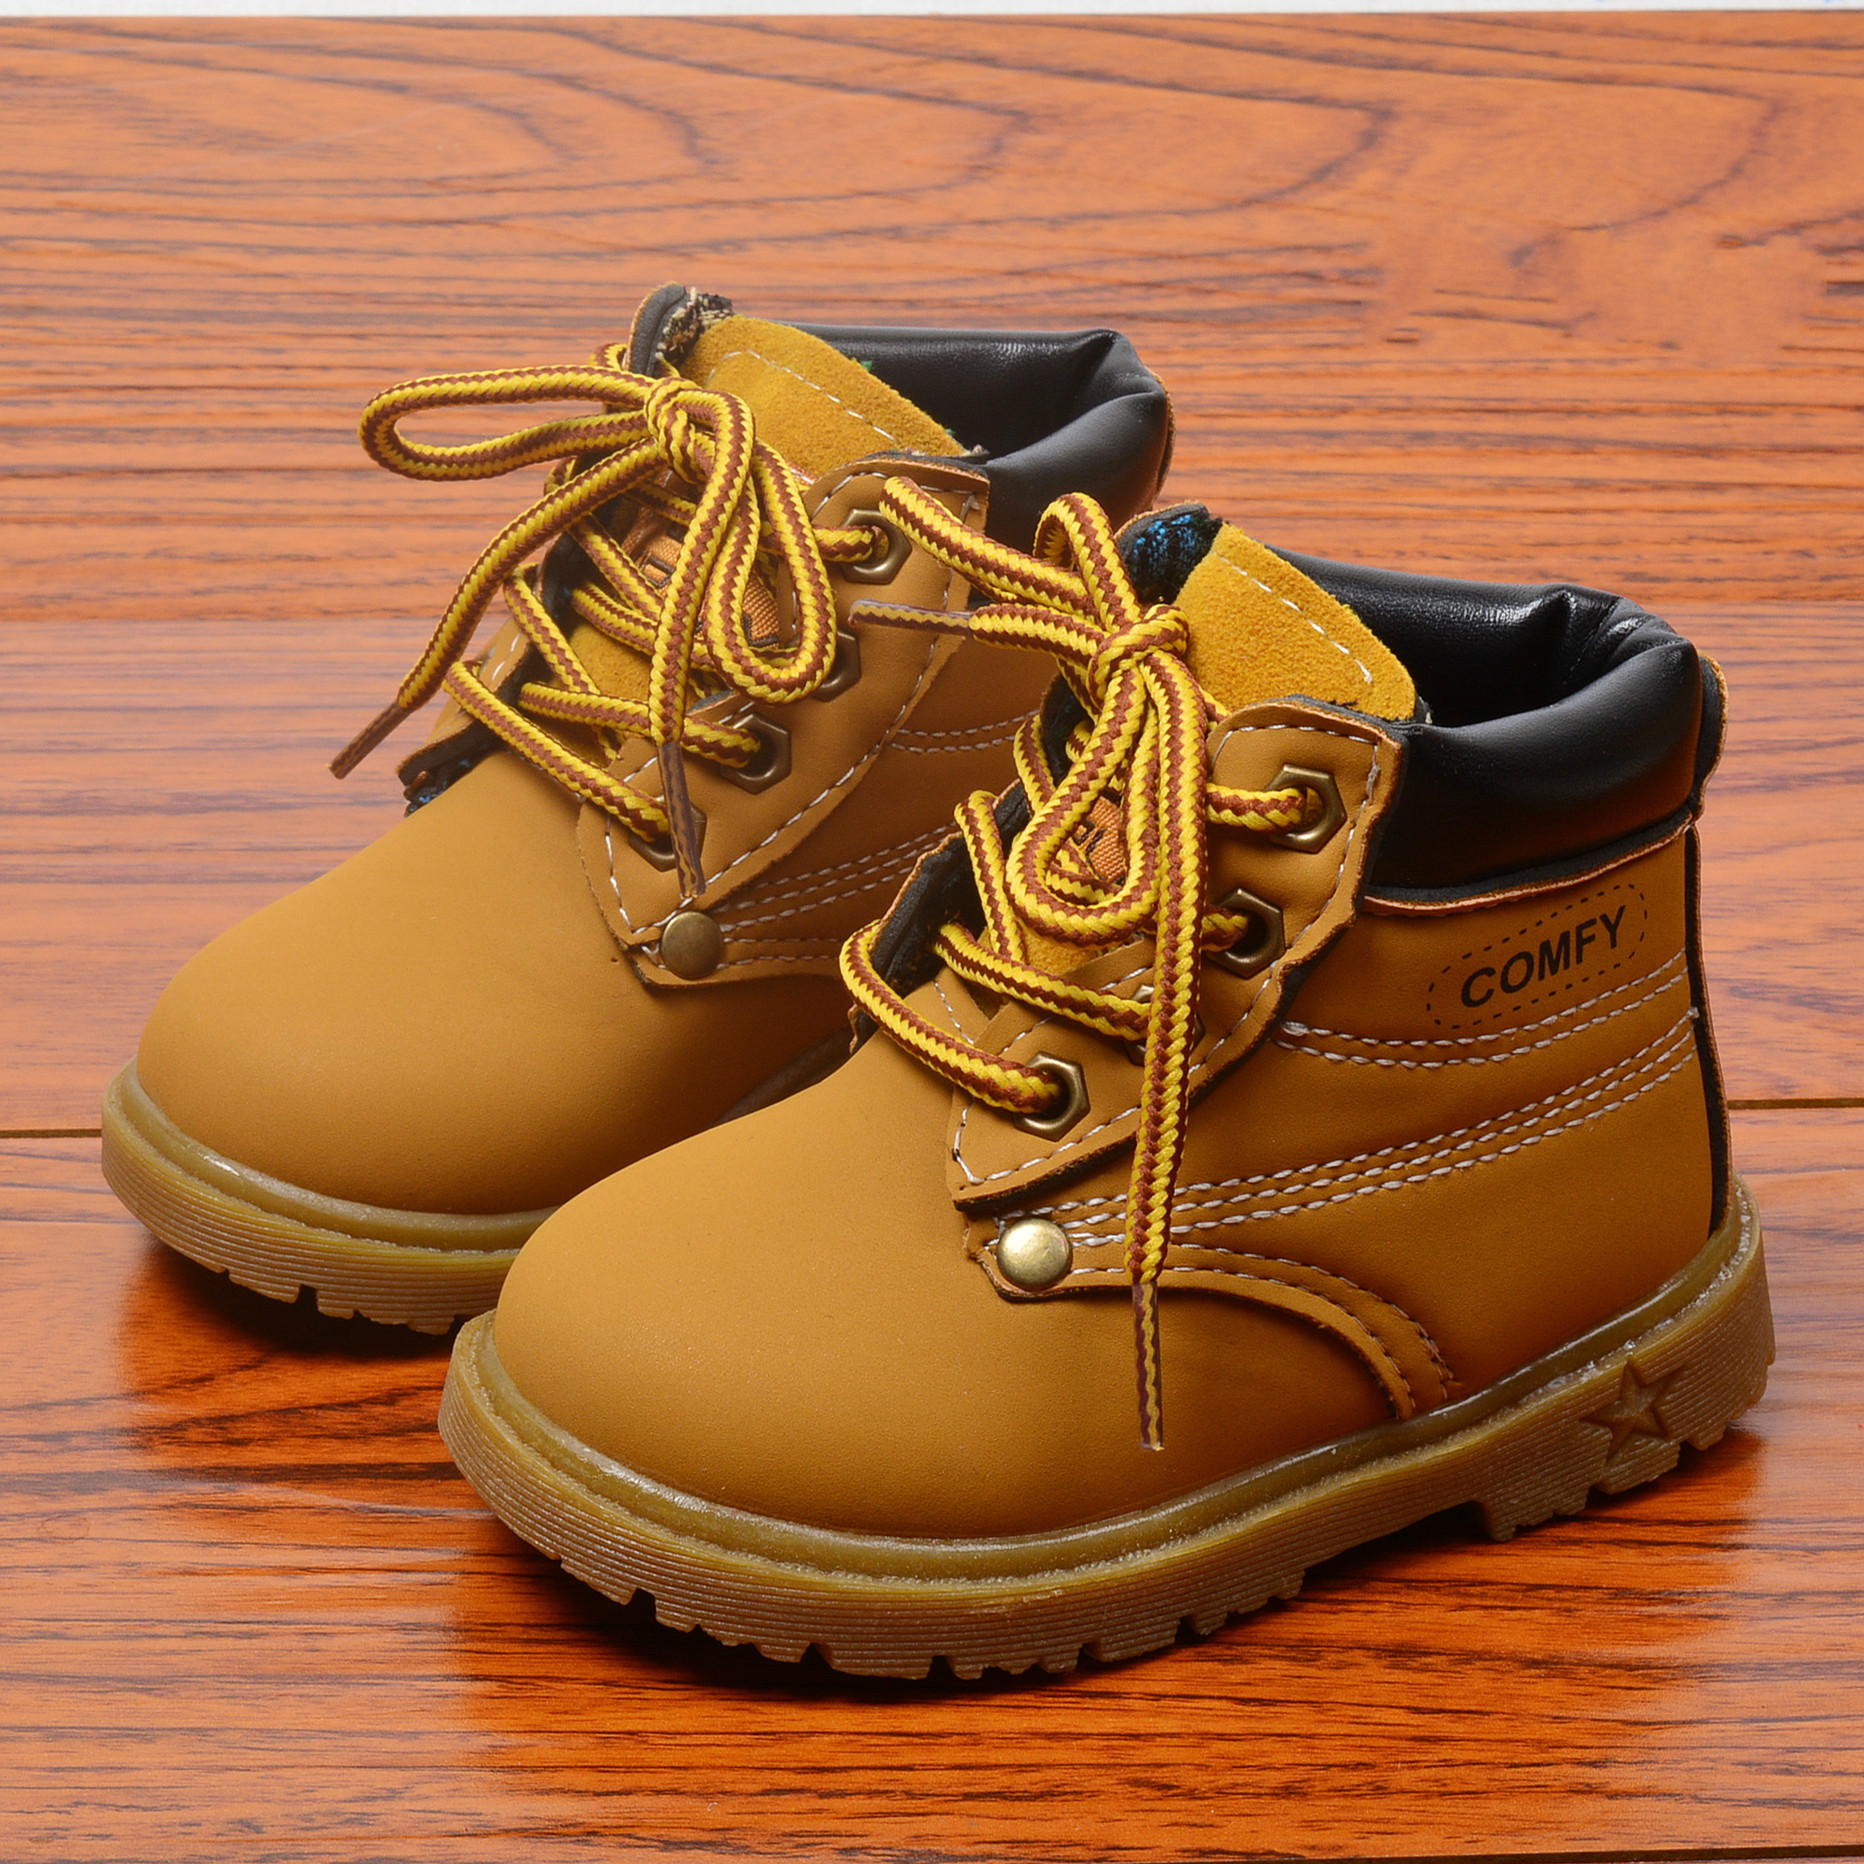 2019 New Fashion Children Mustard Martin Boots Toddler Boys Ankle Boots Girls Shoes Kids Boots  Hot Sale